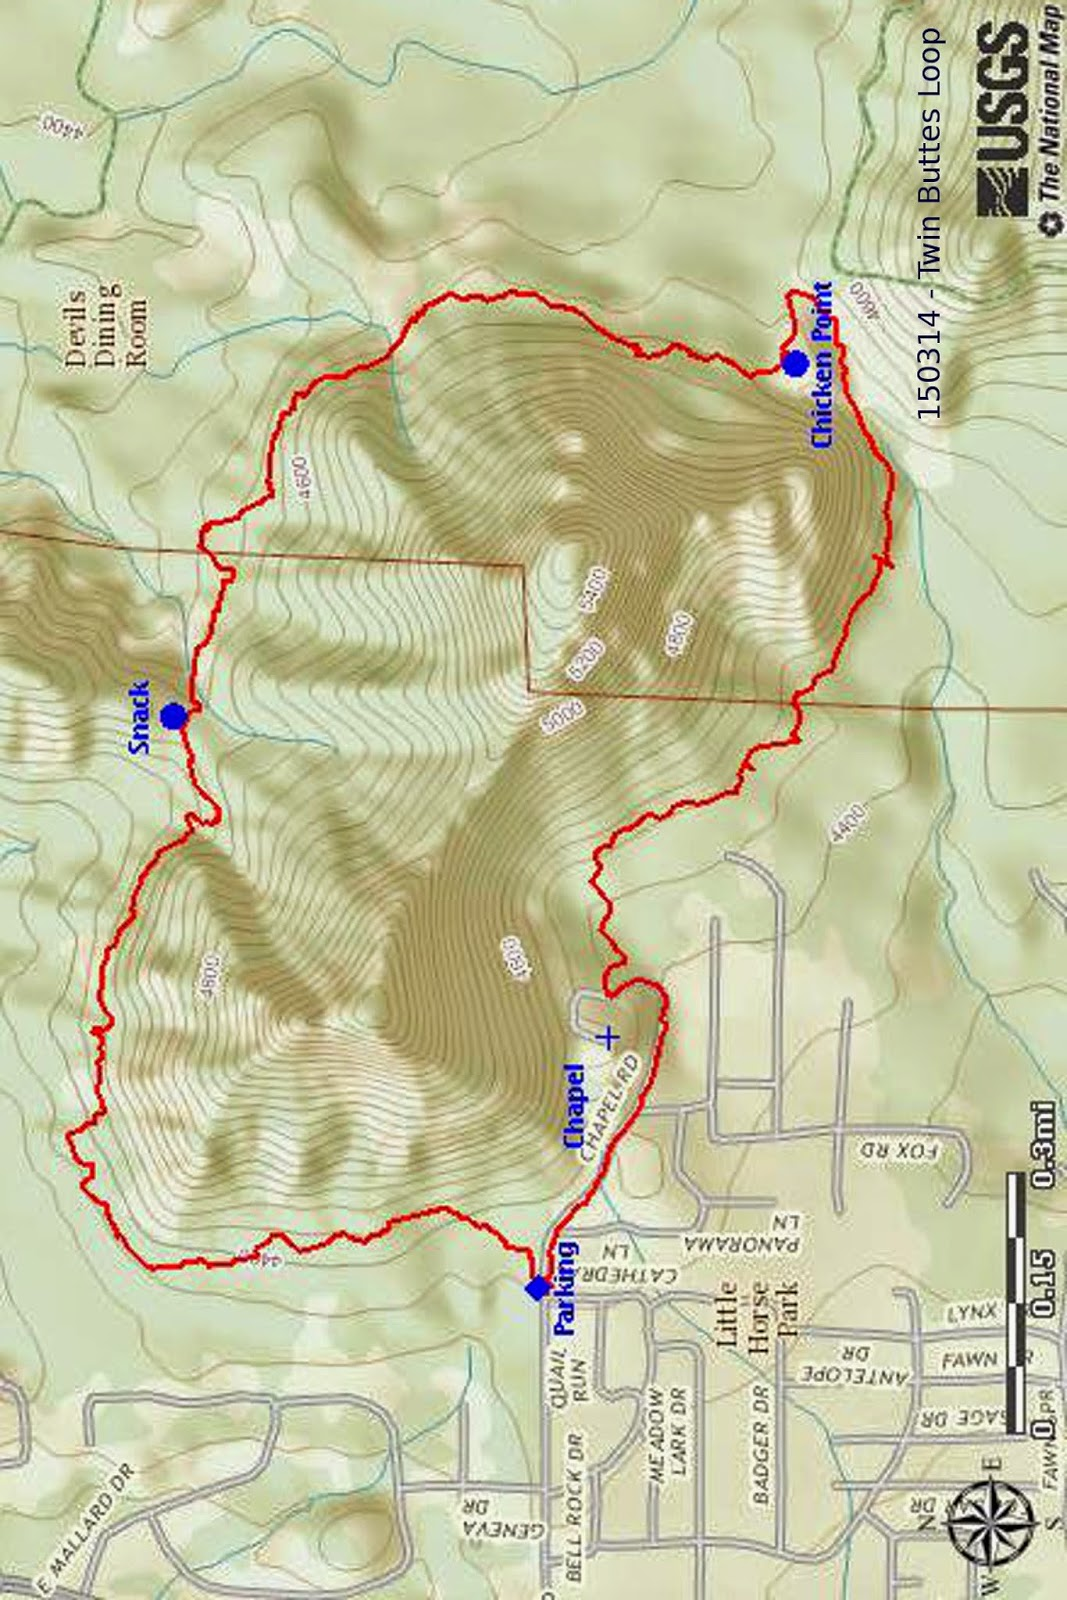 an interactive bike trail map of the area is available at http www trailforks com map lat 34 831287579117884 lon 111 7570010023071 z 15 m roadmap